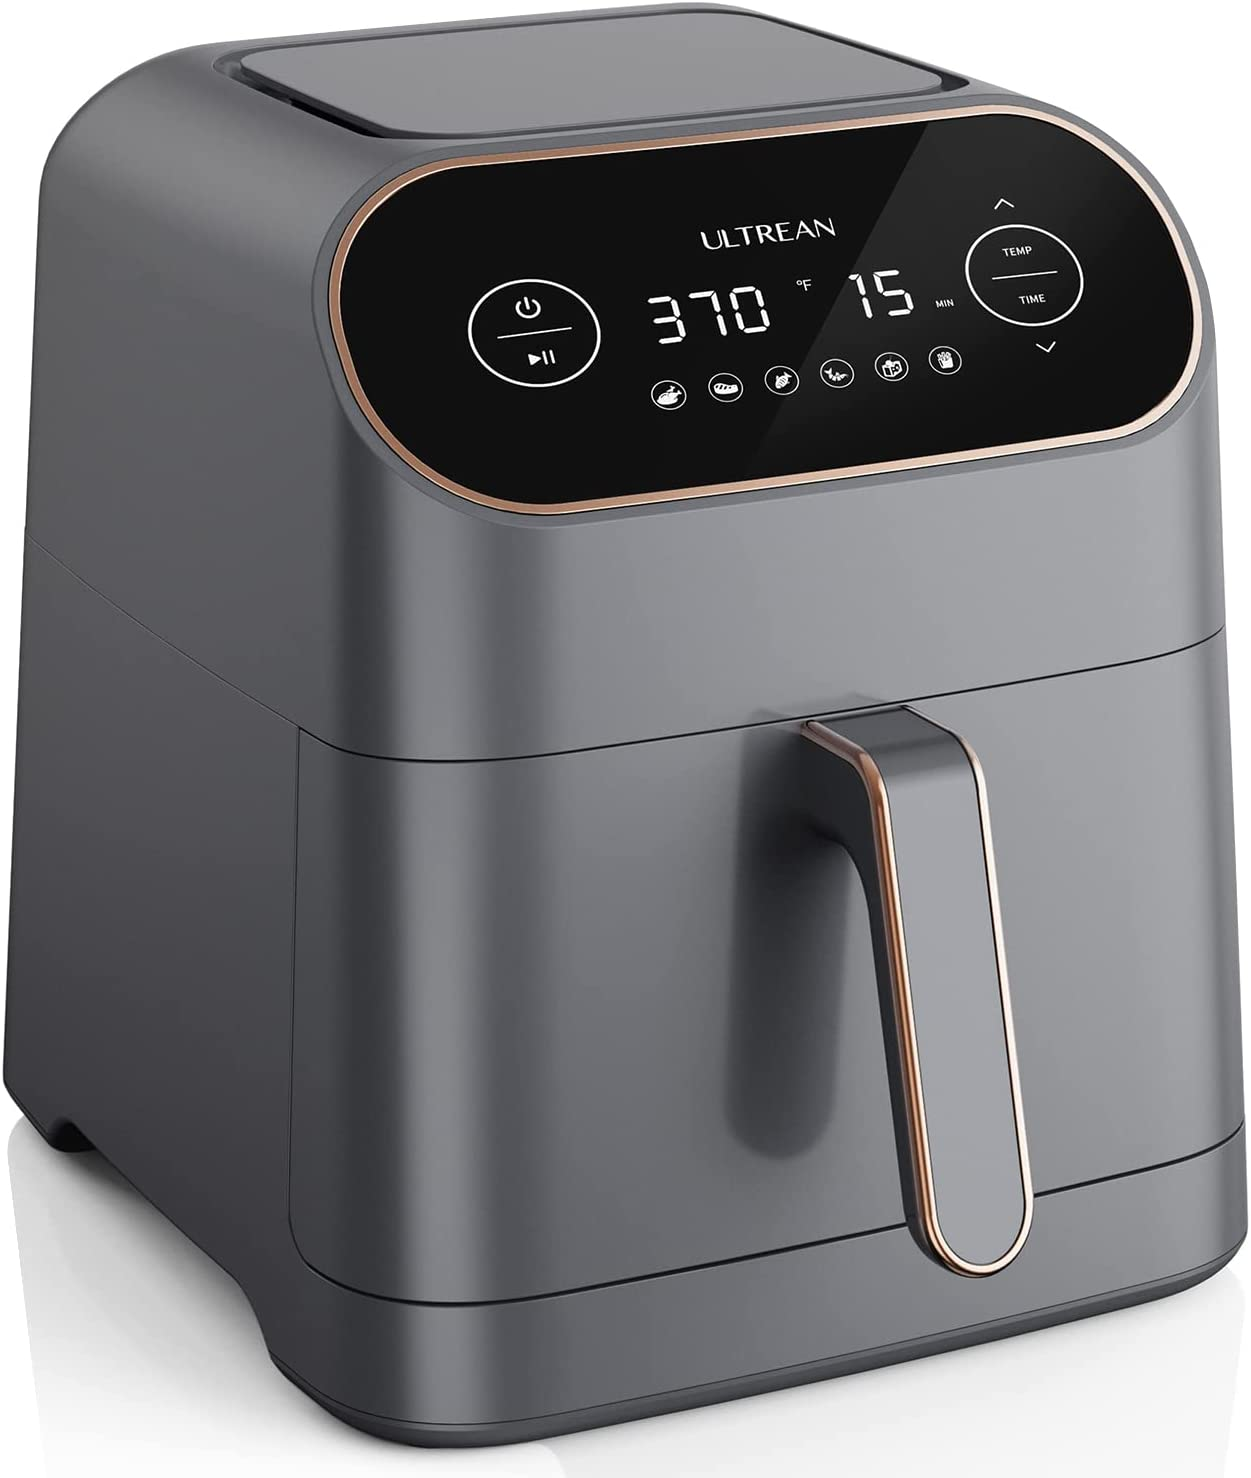 Ultrean Air Fryer, 7 Quart 6-in-1 Electric Hot XL Air Fryer Oven Oilless Cooker, Large Family Size LCD Touch Control Panel and Nonstick Basket, UL Certified,1700W